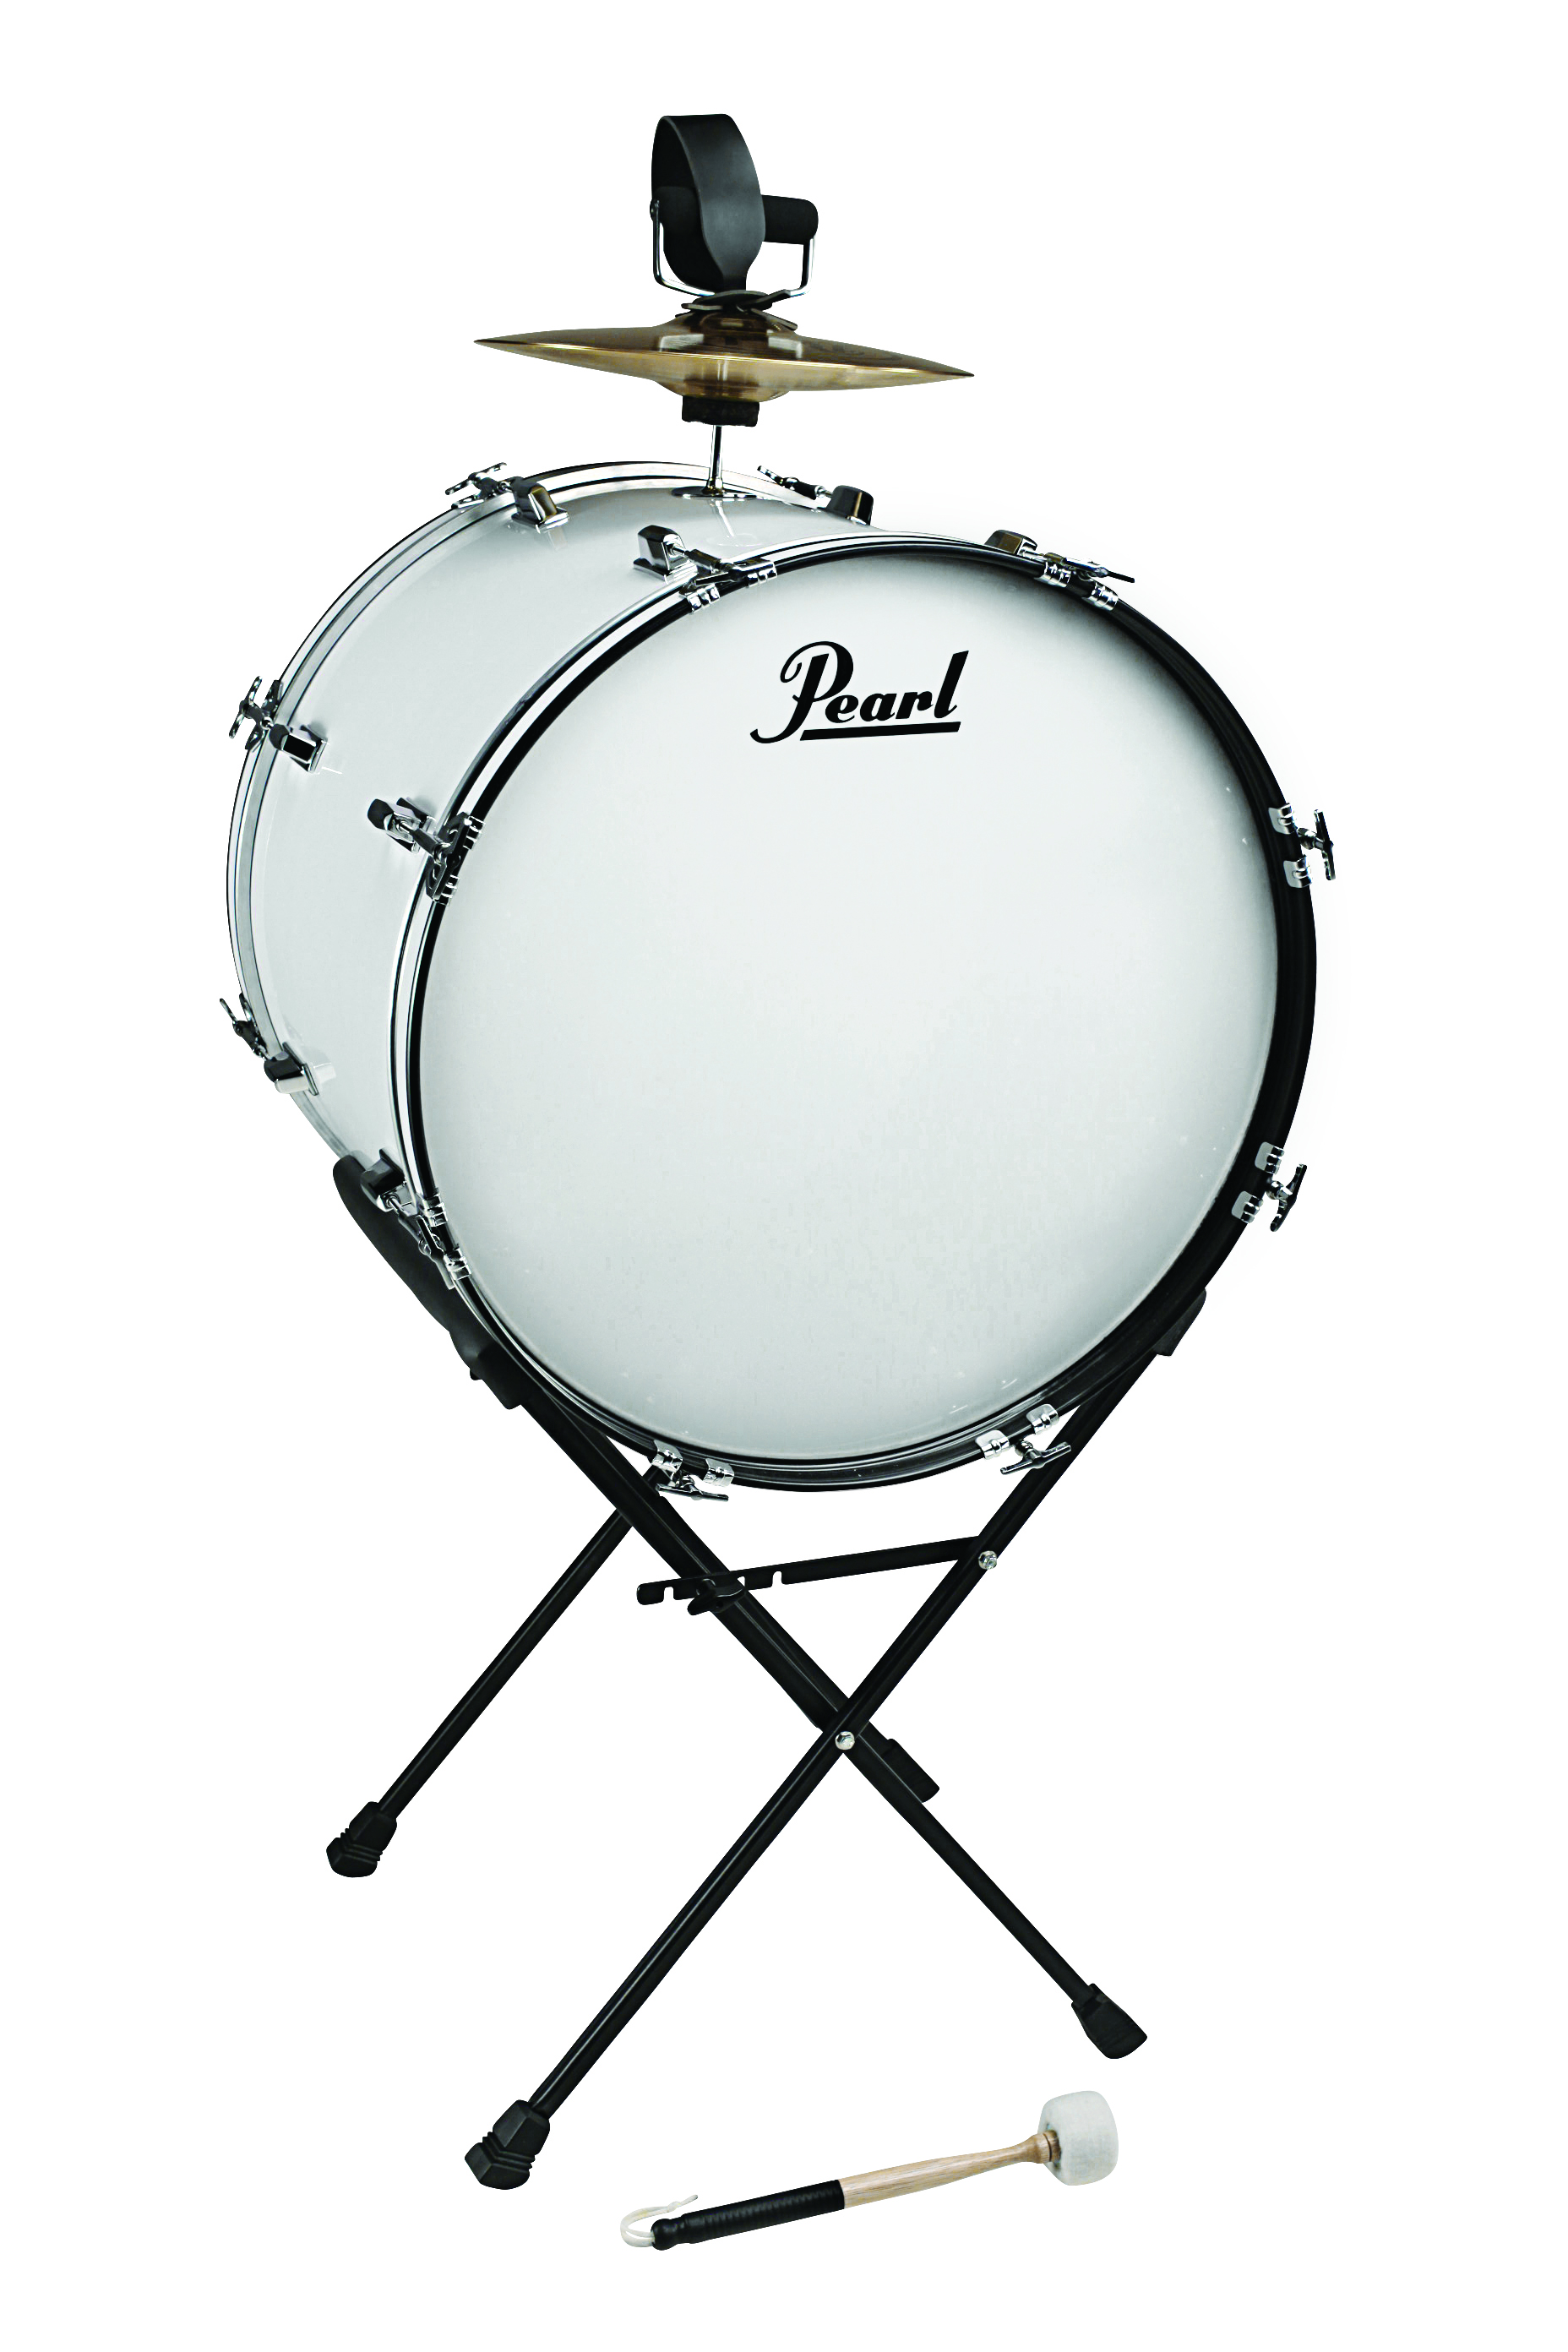 1856x2784 Home Pearl Drums